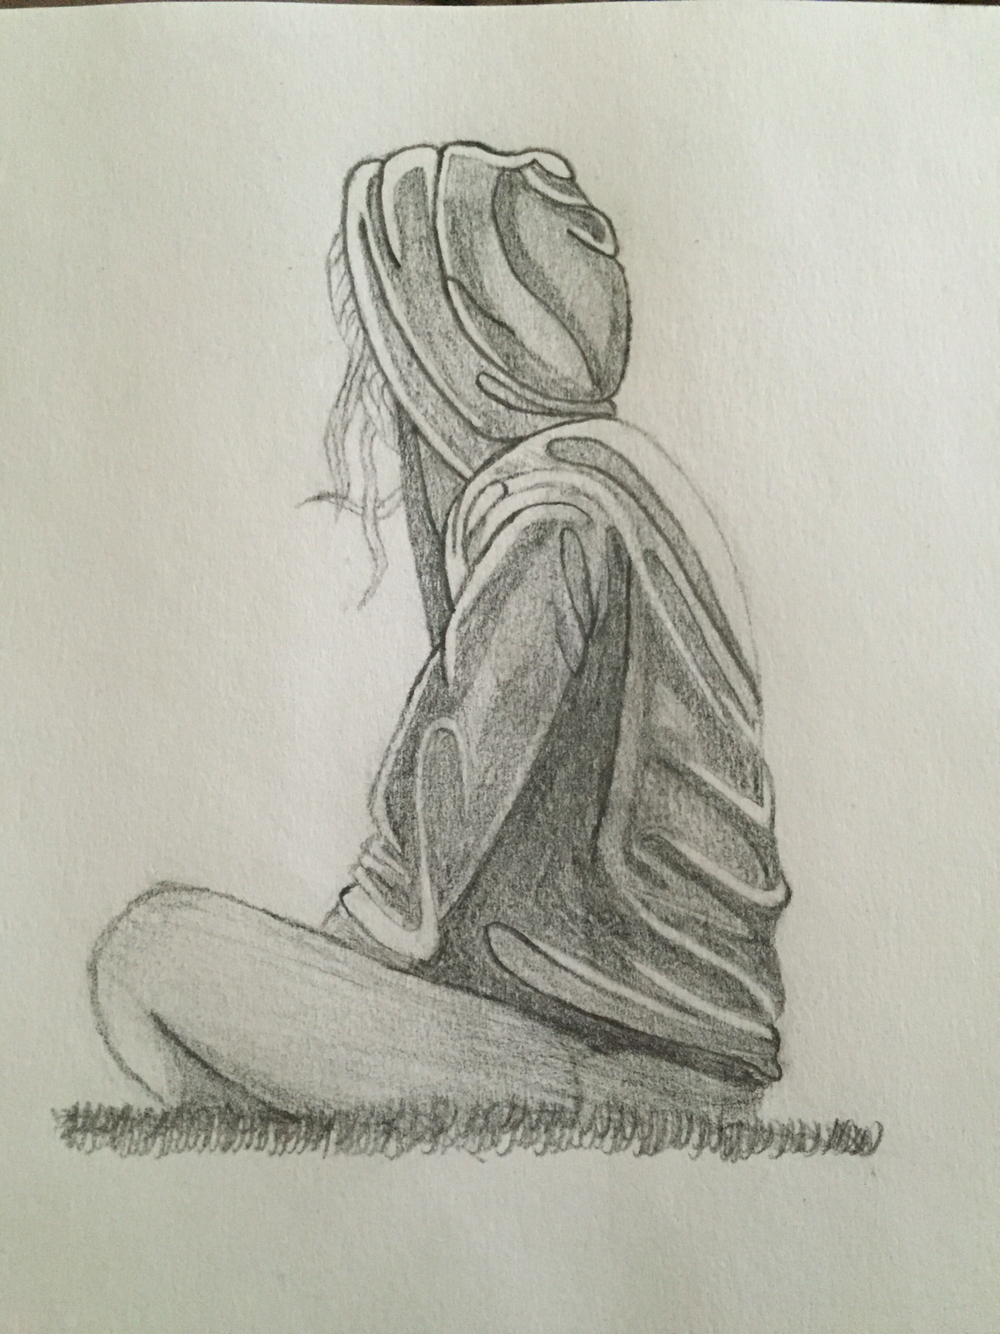 1000x1334 A Boy With A Girl For A Sad Hug Drawing Images Sad Sketches Of Boy